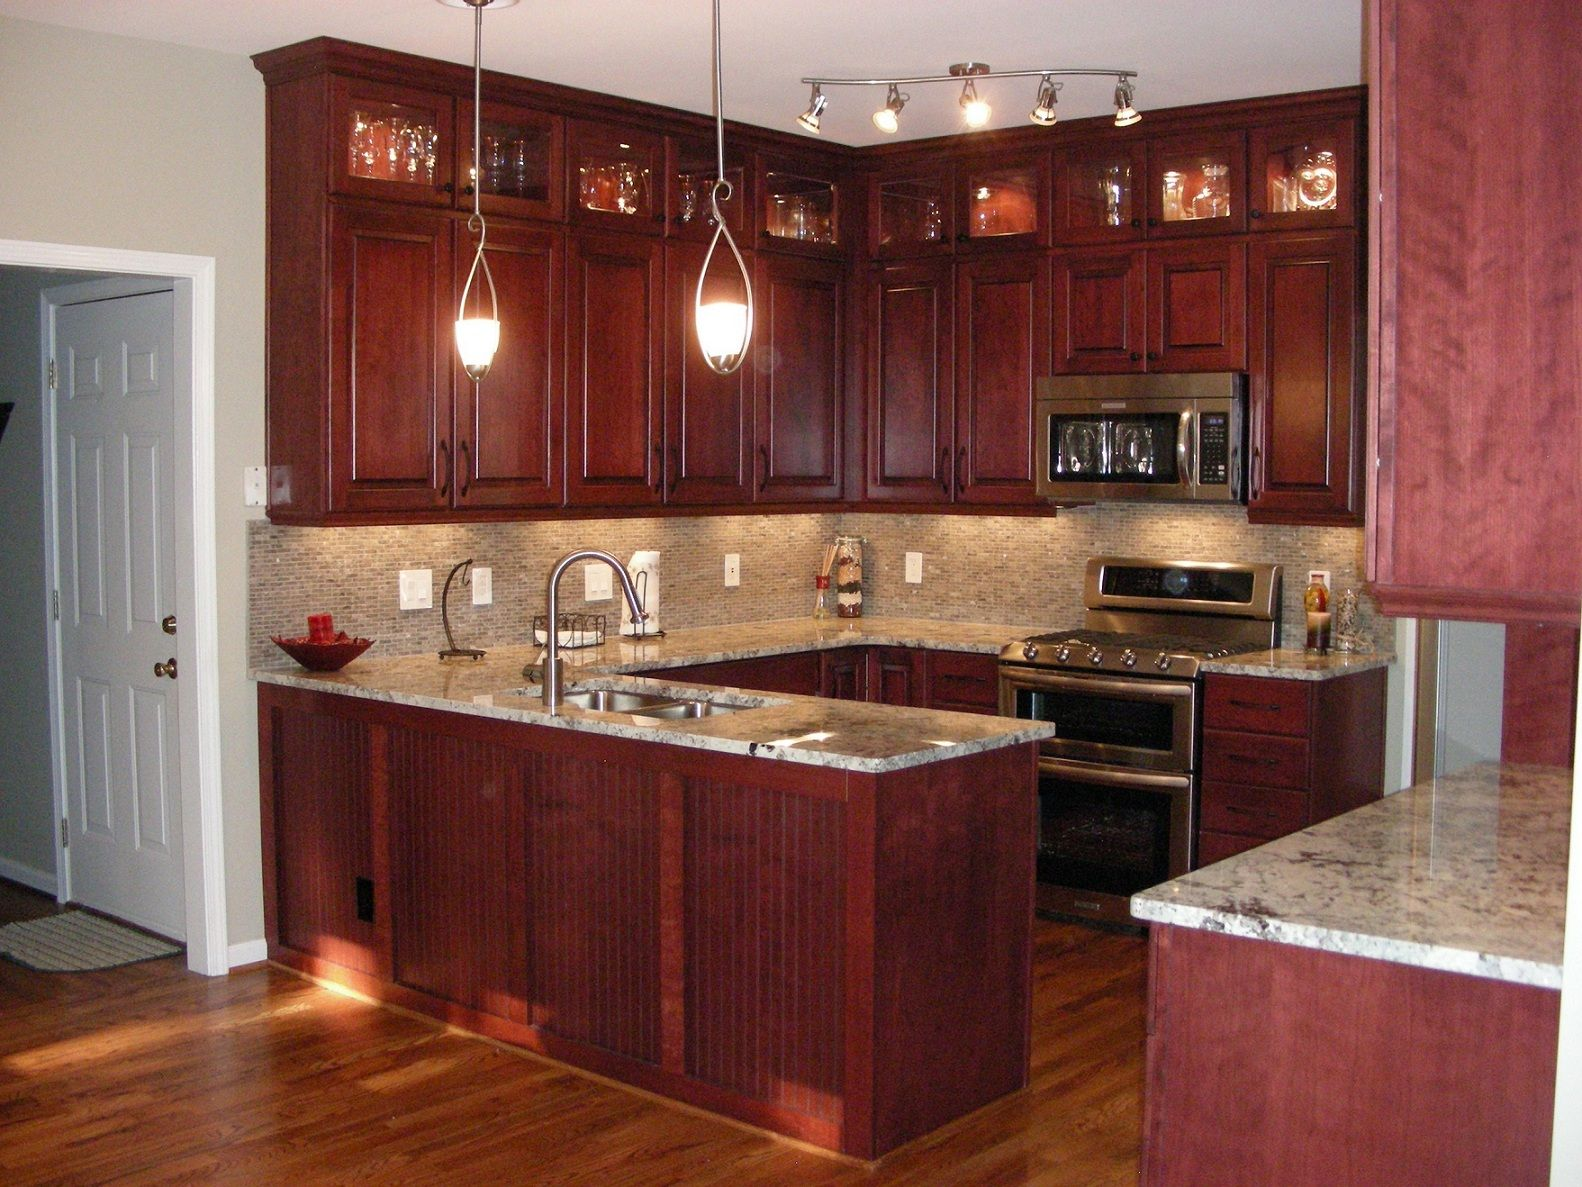 cherry kitchen cabinets. Cherry Kitchen Cabinets In A Thoughtful Design Work Hard To Make This House  Home Kitchen Cabinets With Gray Wall And Quartz Countertops Ideas